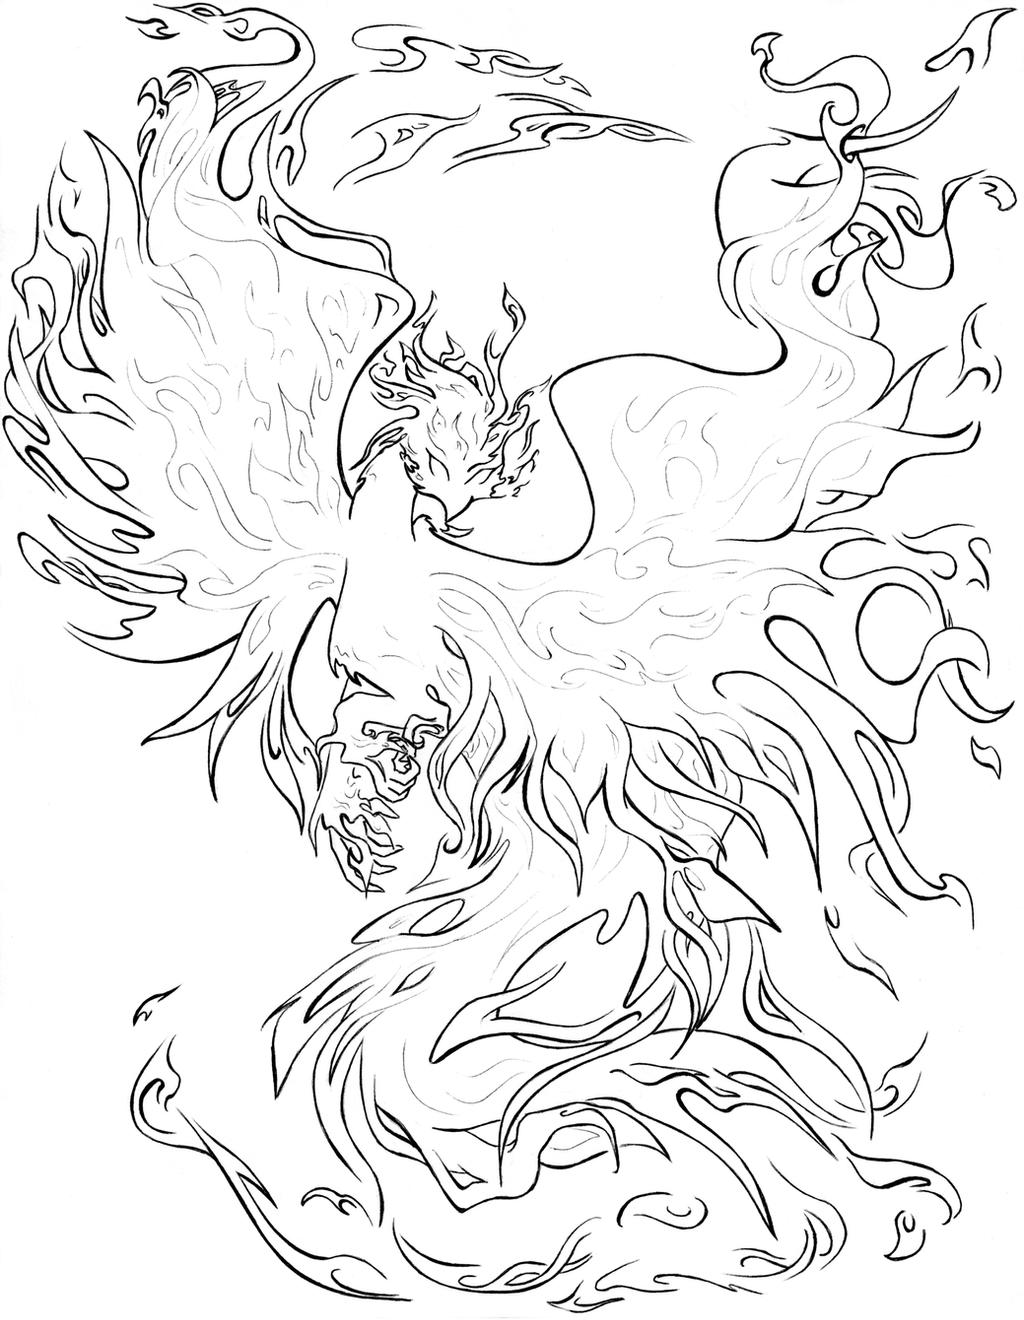 Coloring Pages Phoenix: Fawkes The Phoenix Coloring Pages Coloring Pages